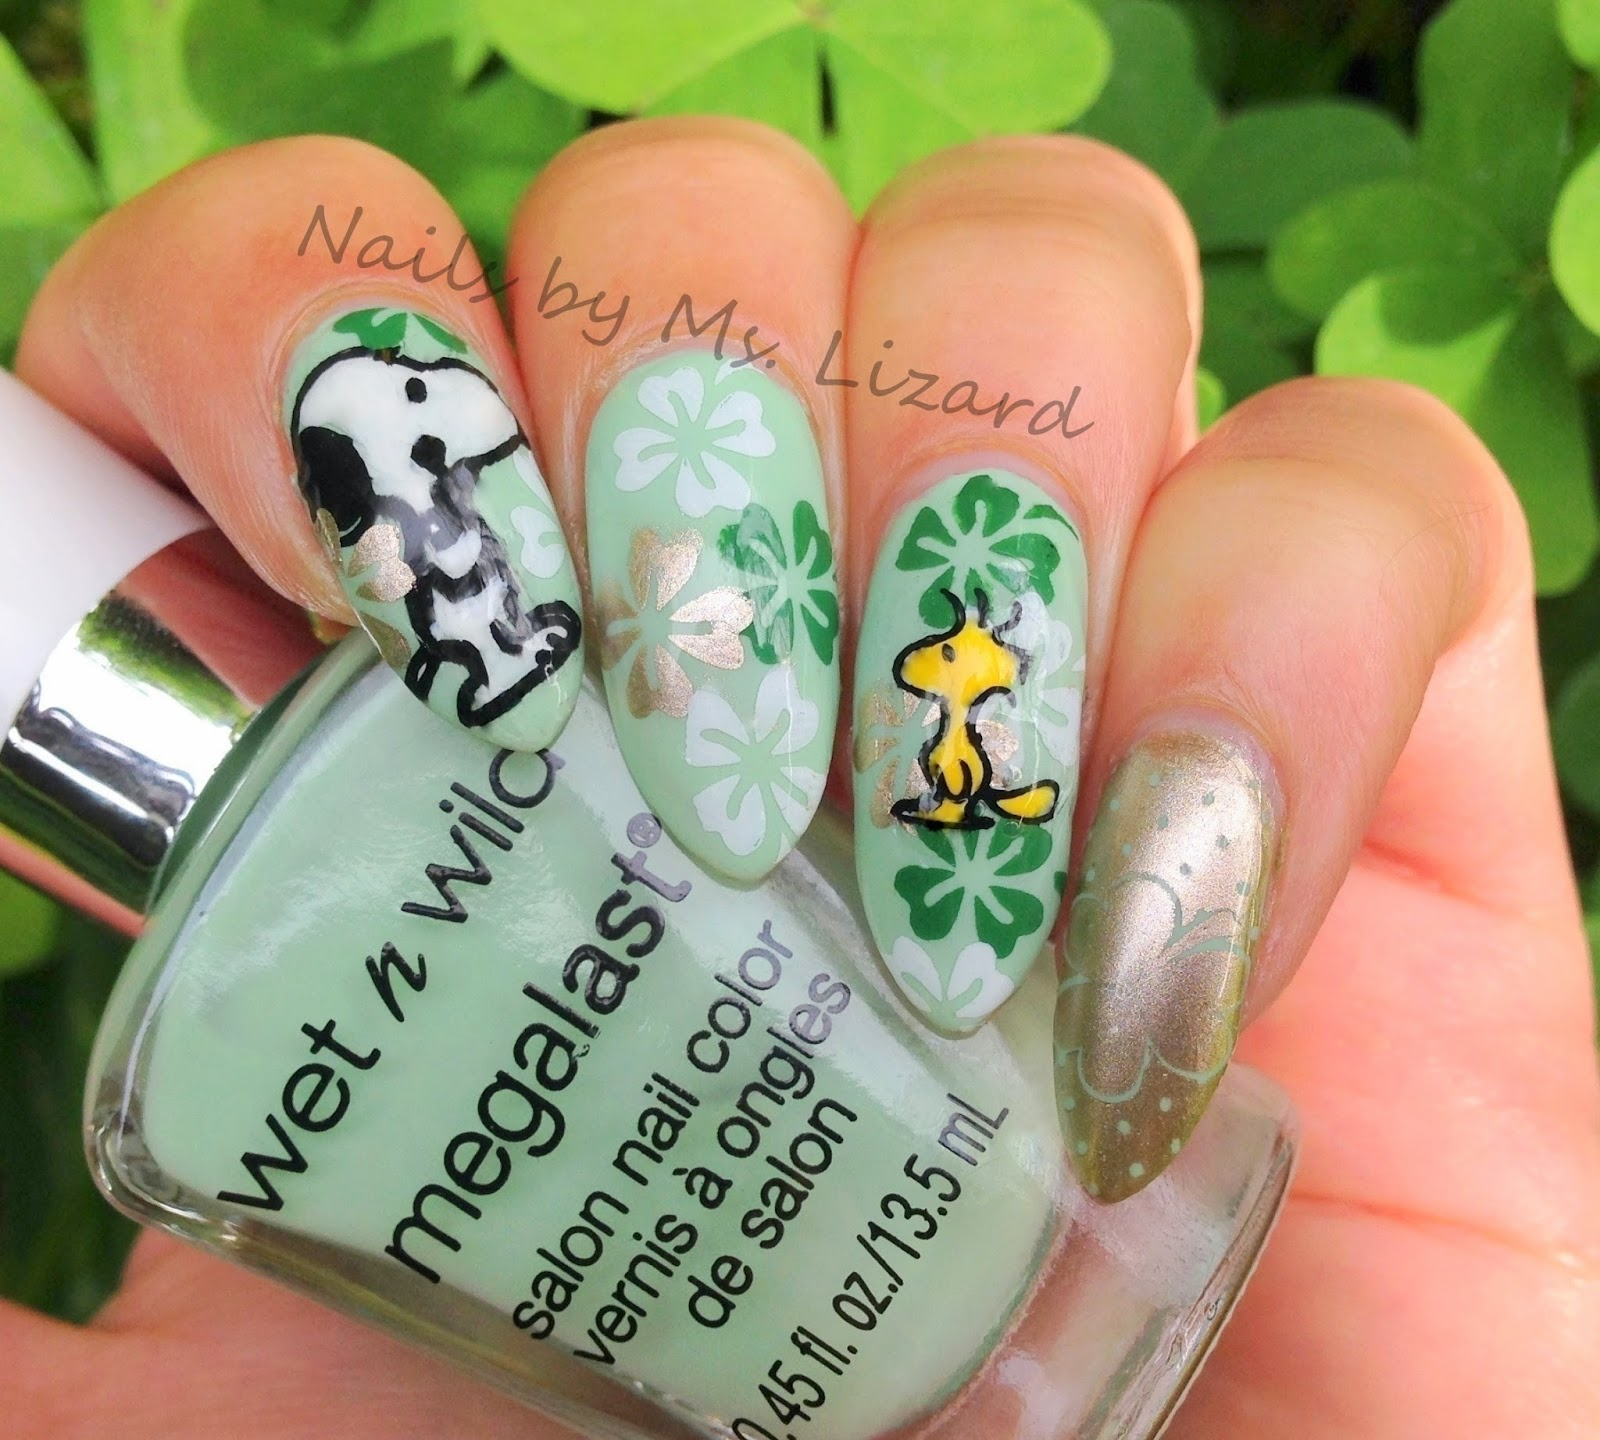 Nails by Ms. Lizard: Happy St. Patrick\'s Day